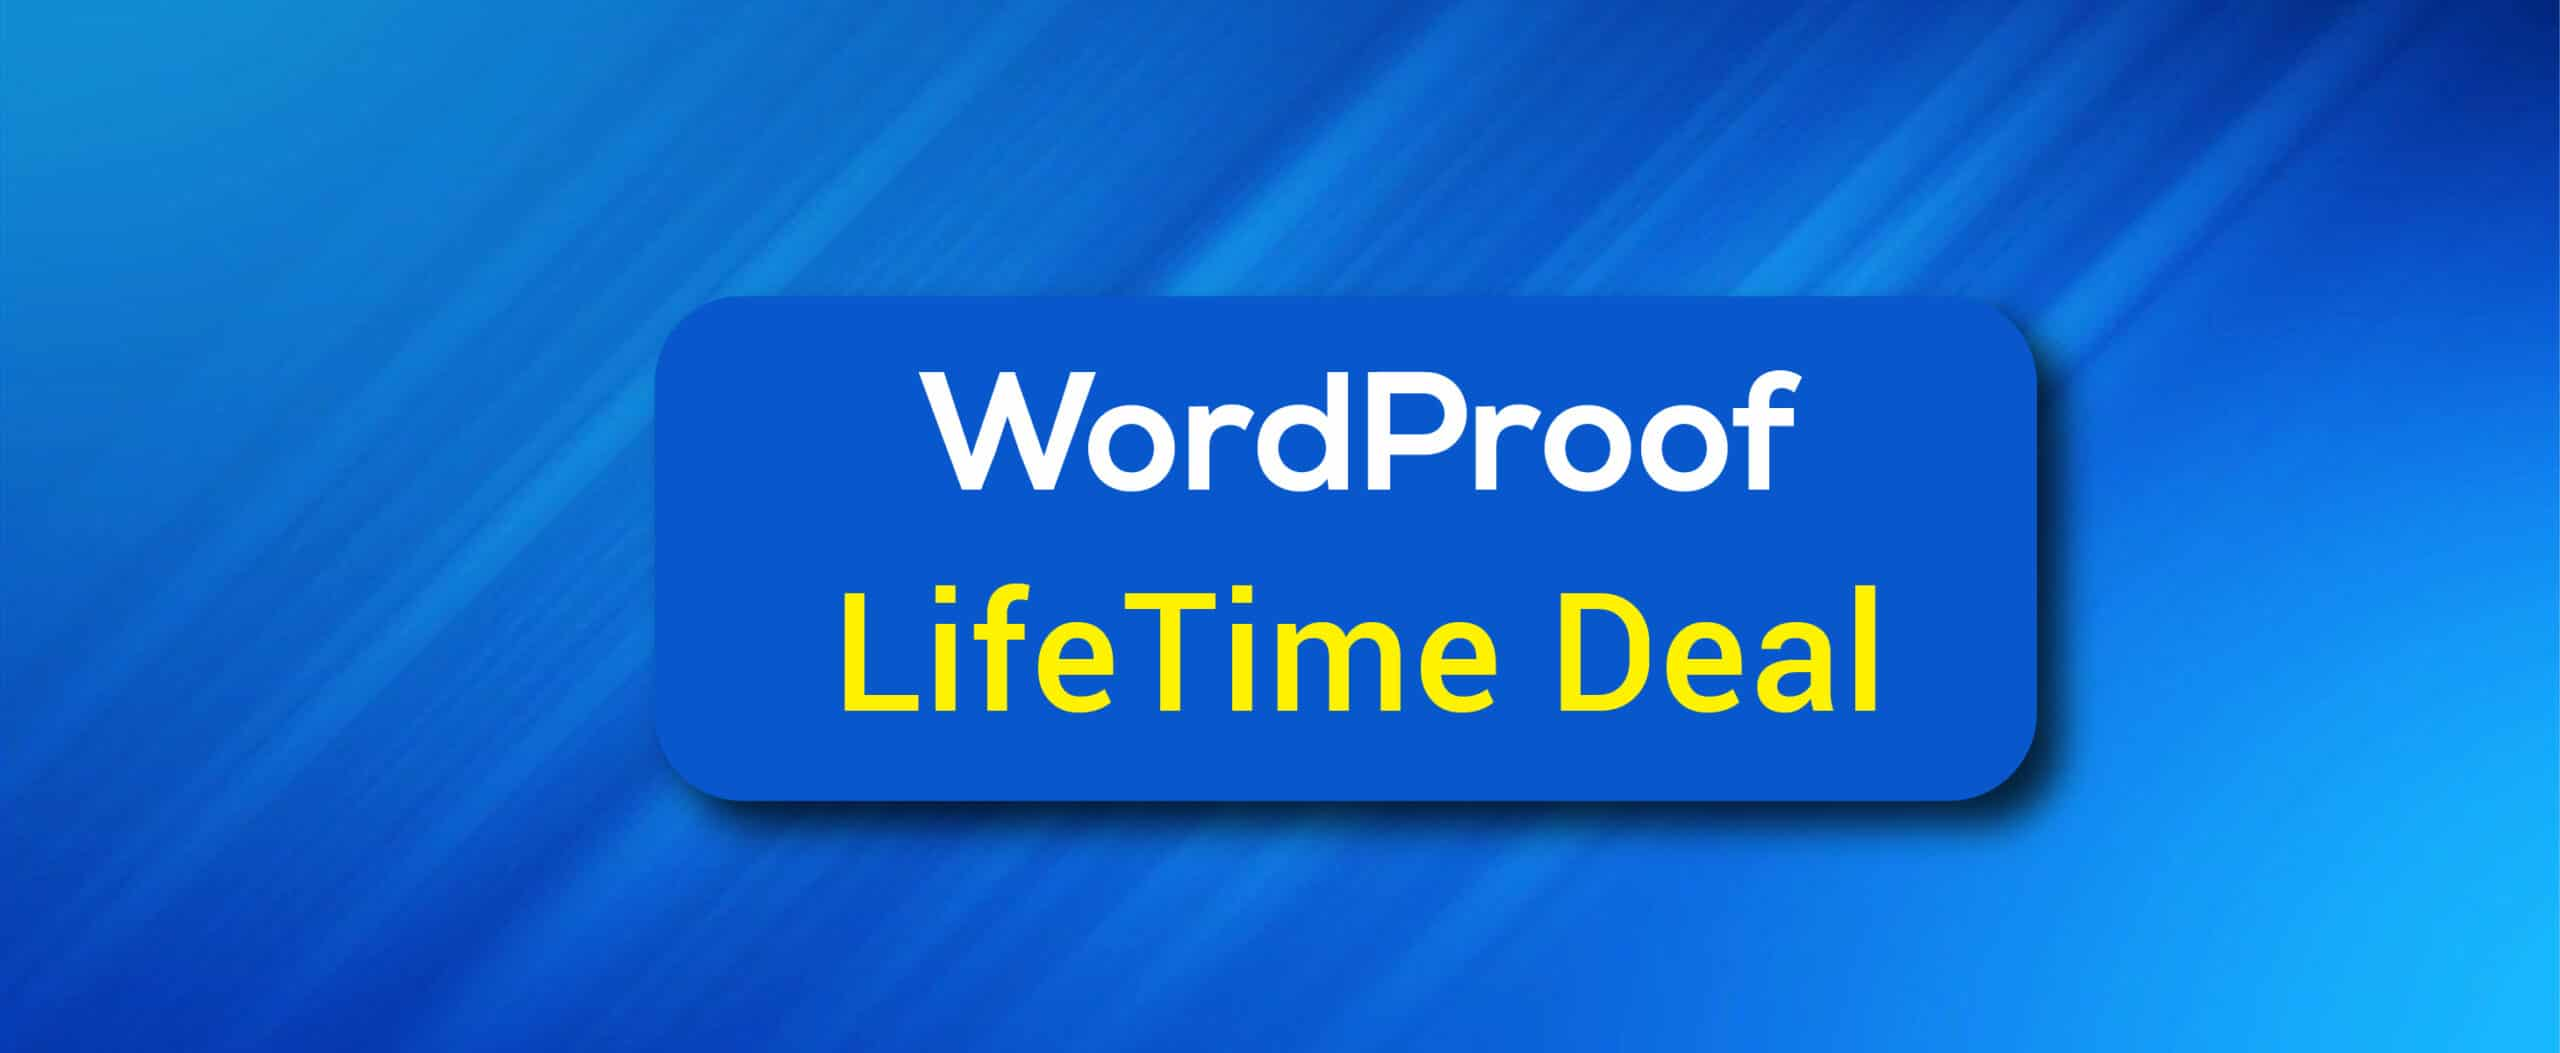 WordProof Reviews, Details, Pricing And Lifetime Deal